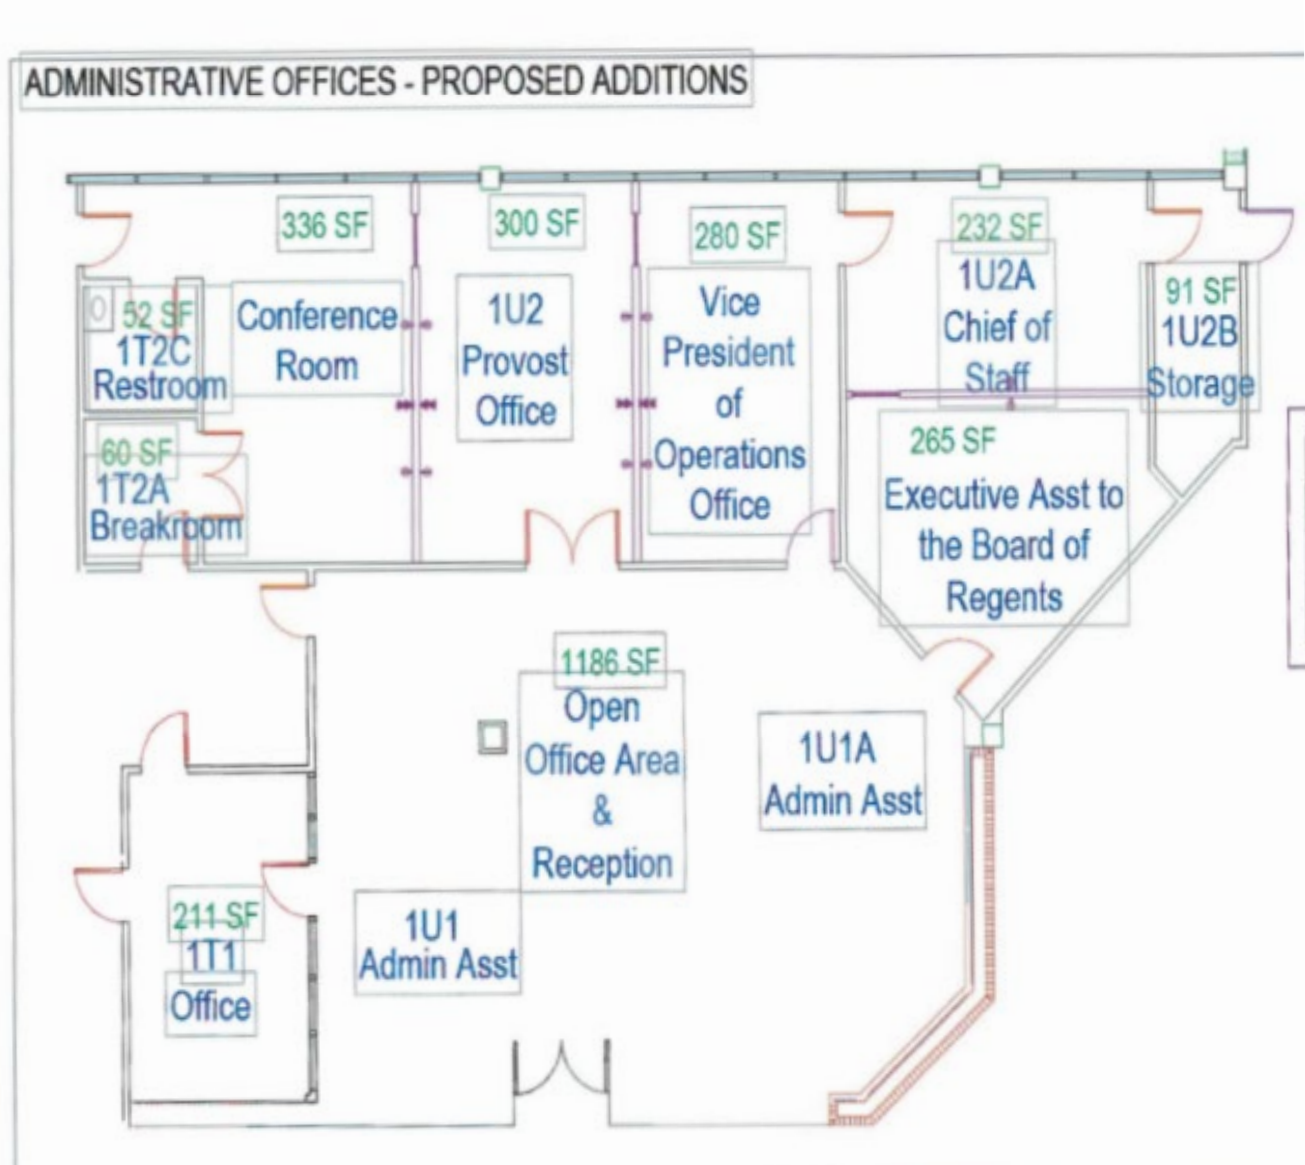 More remodeling coming for former president's office